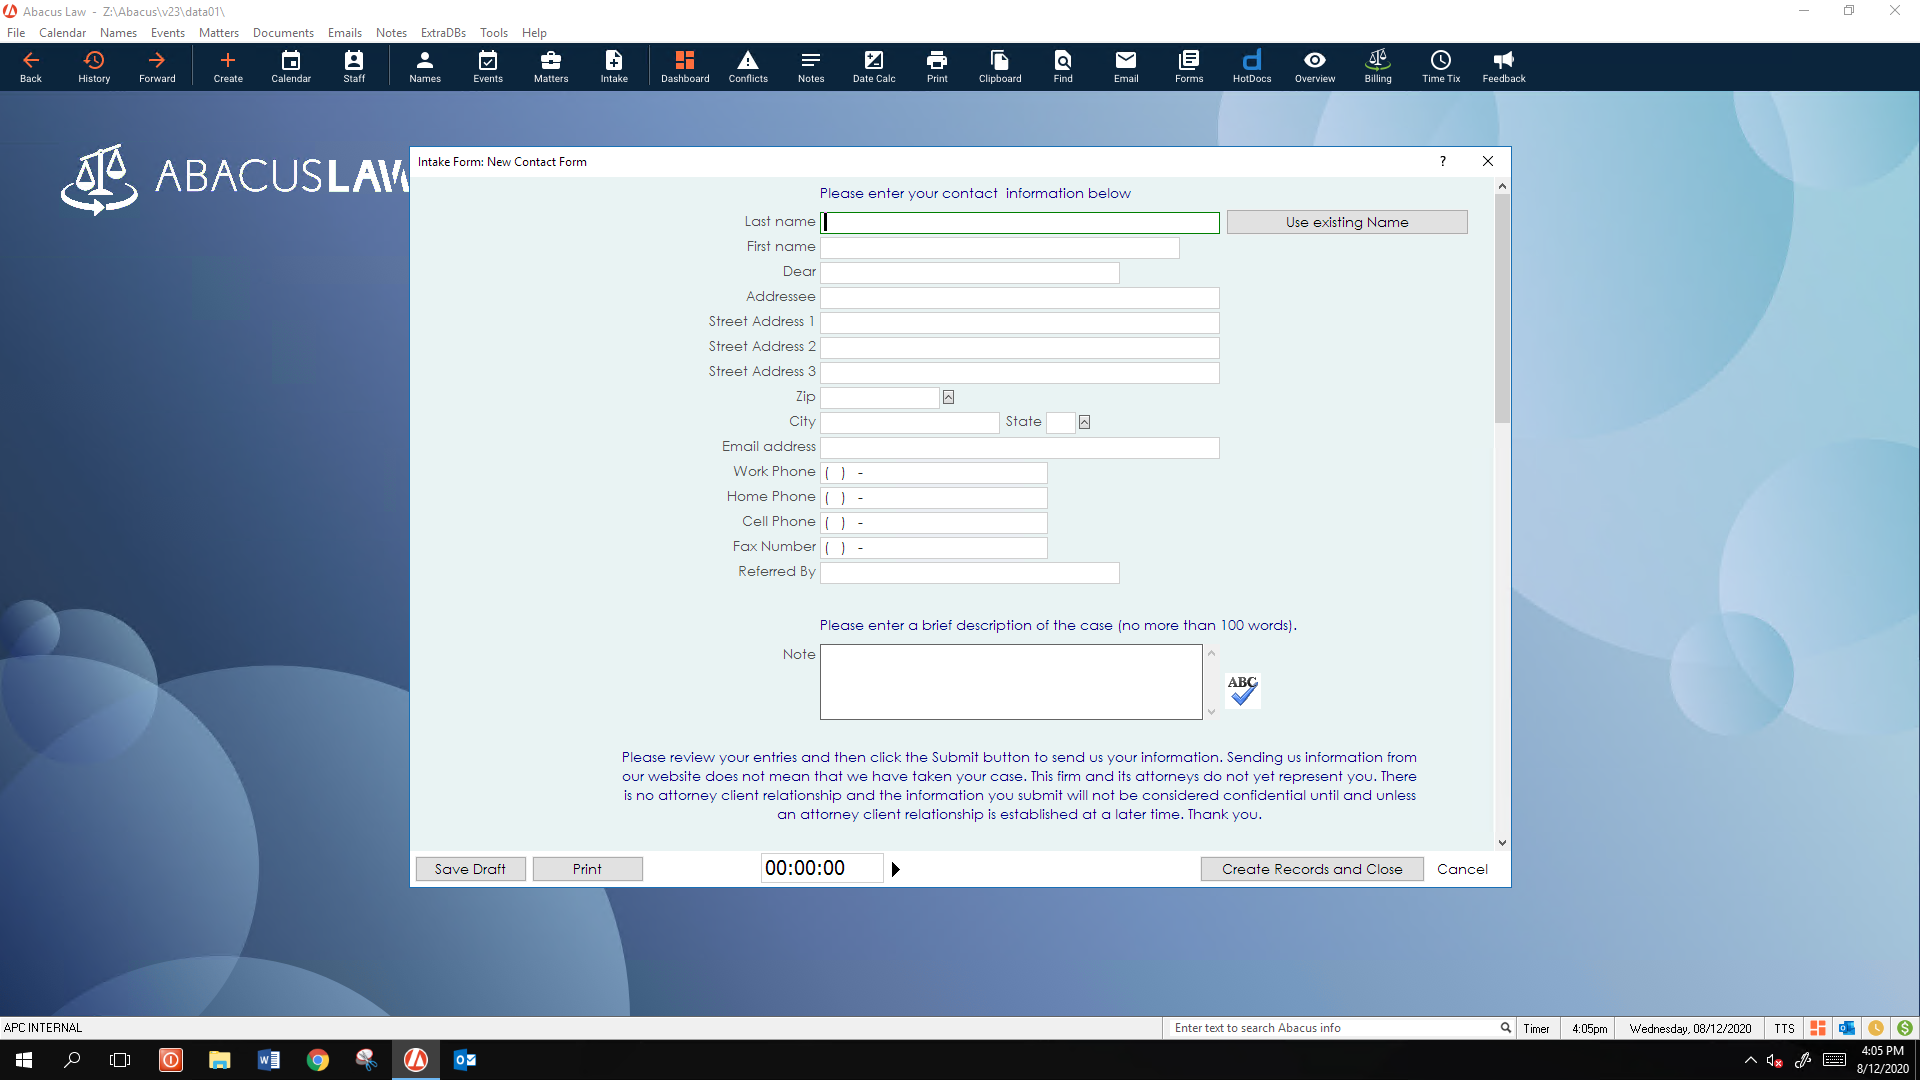 AbacusLaw Software - 5